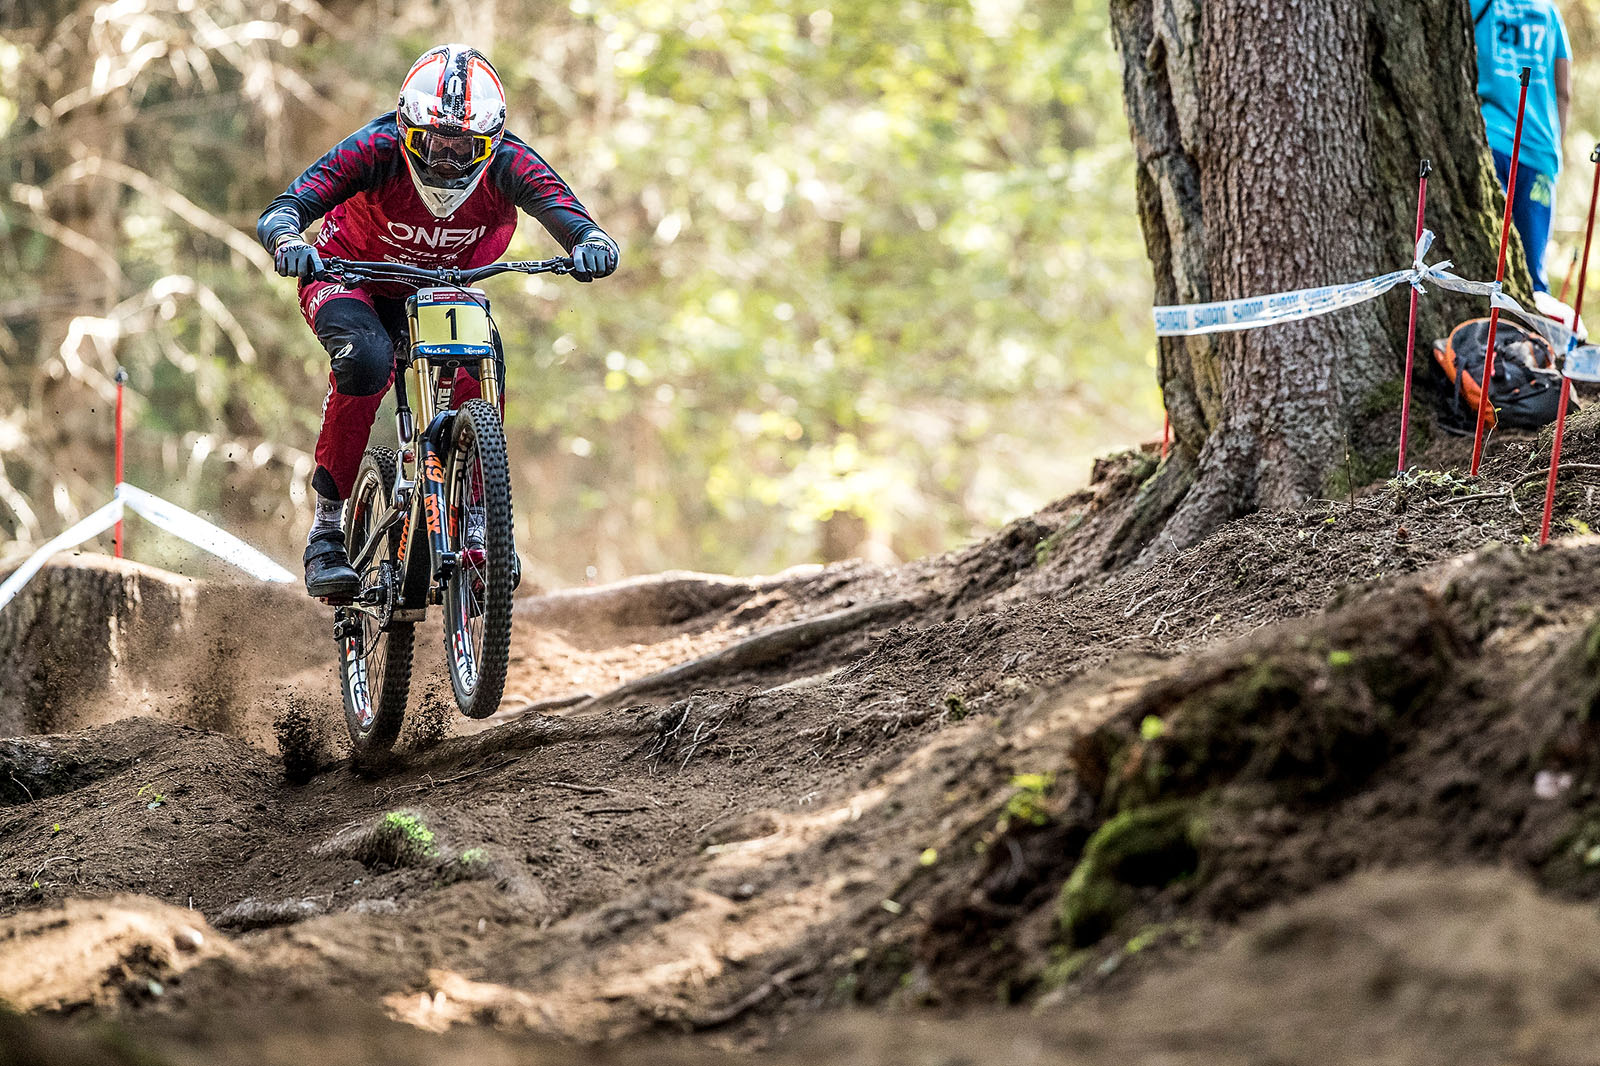 Greg Minnaar on his way to 2nd at the Val di Sole qualifiers